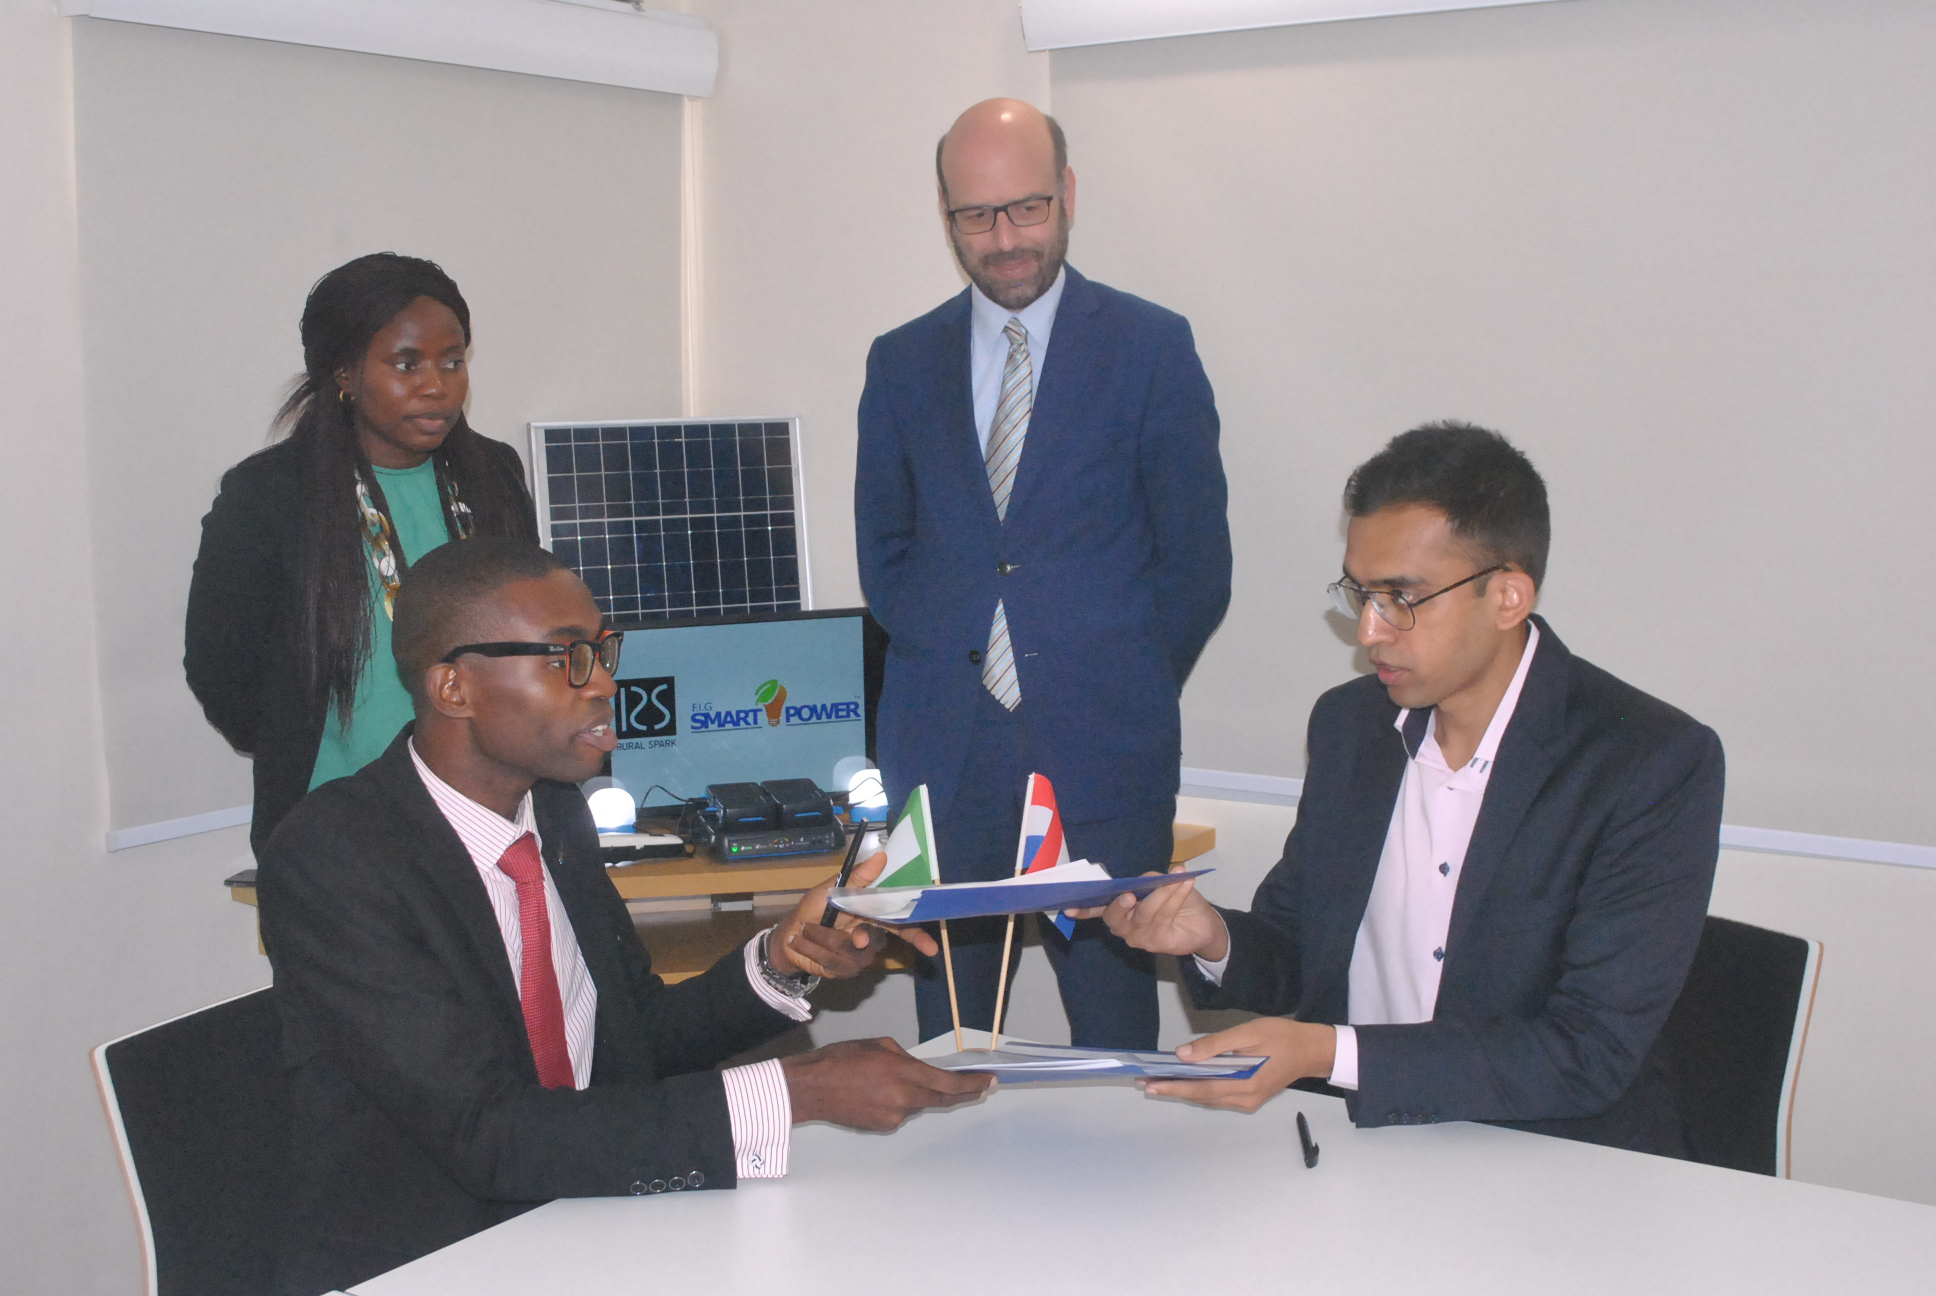 Tolu-tope Dade (CEO Smartpower) and Shagun Jain (Rural Spark) signing a partnership for electrification of rural Nigeria, overlooked by Michel Deelen (Deputy Ambassador of the Kingdom of the Netherlands to Nigeria) and Sonia Fujusigbe (Economic Trade and Investment Affairs, Embassy of the Kingdom of the Netherlands).